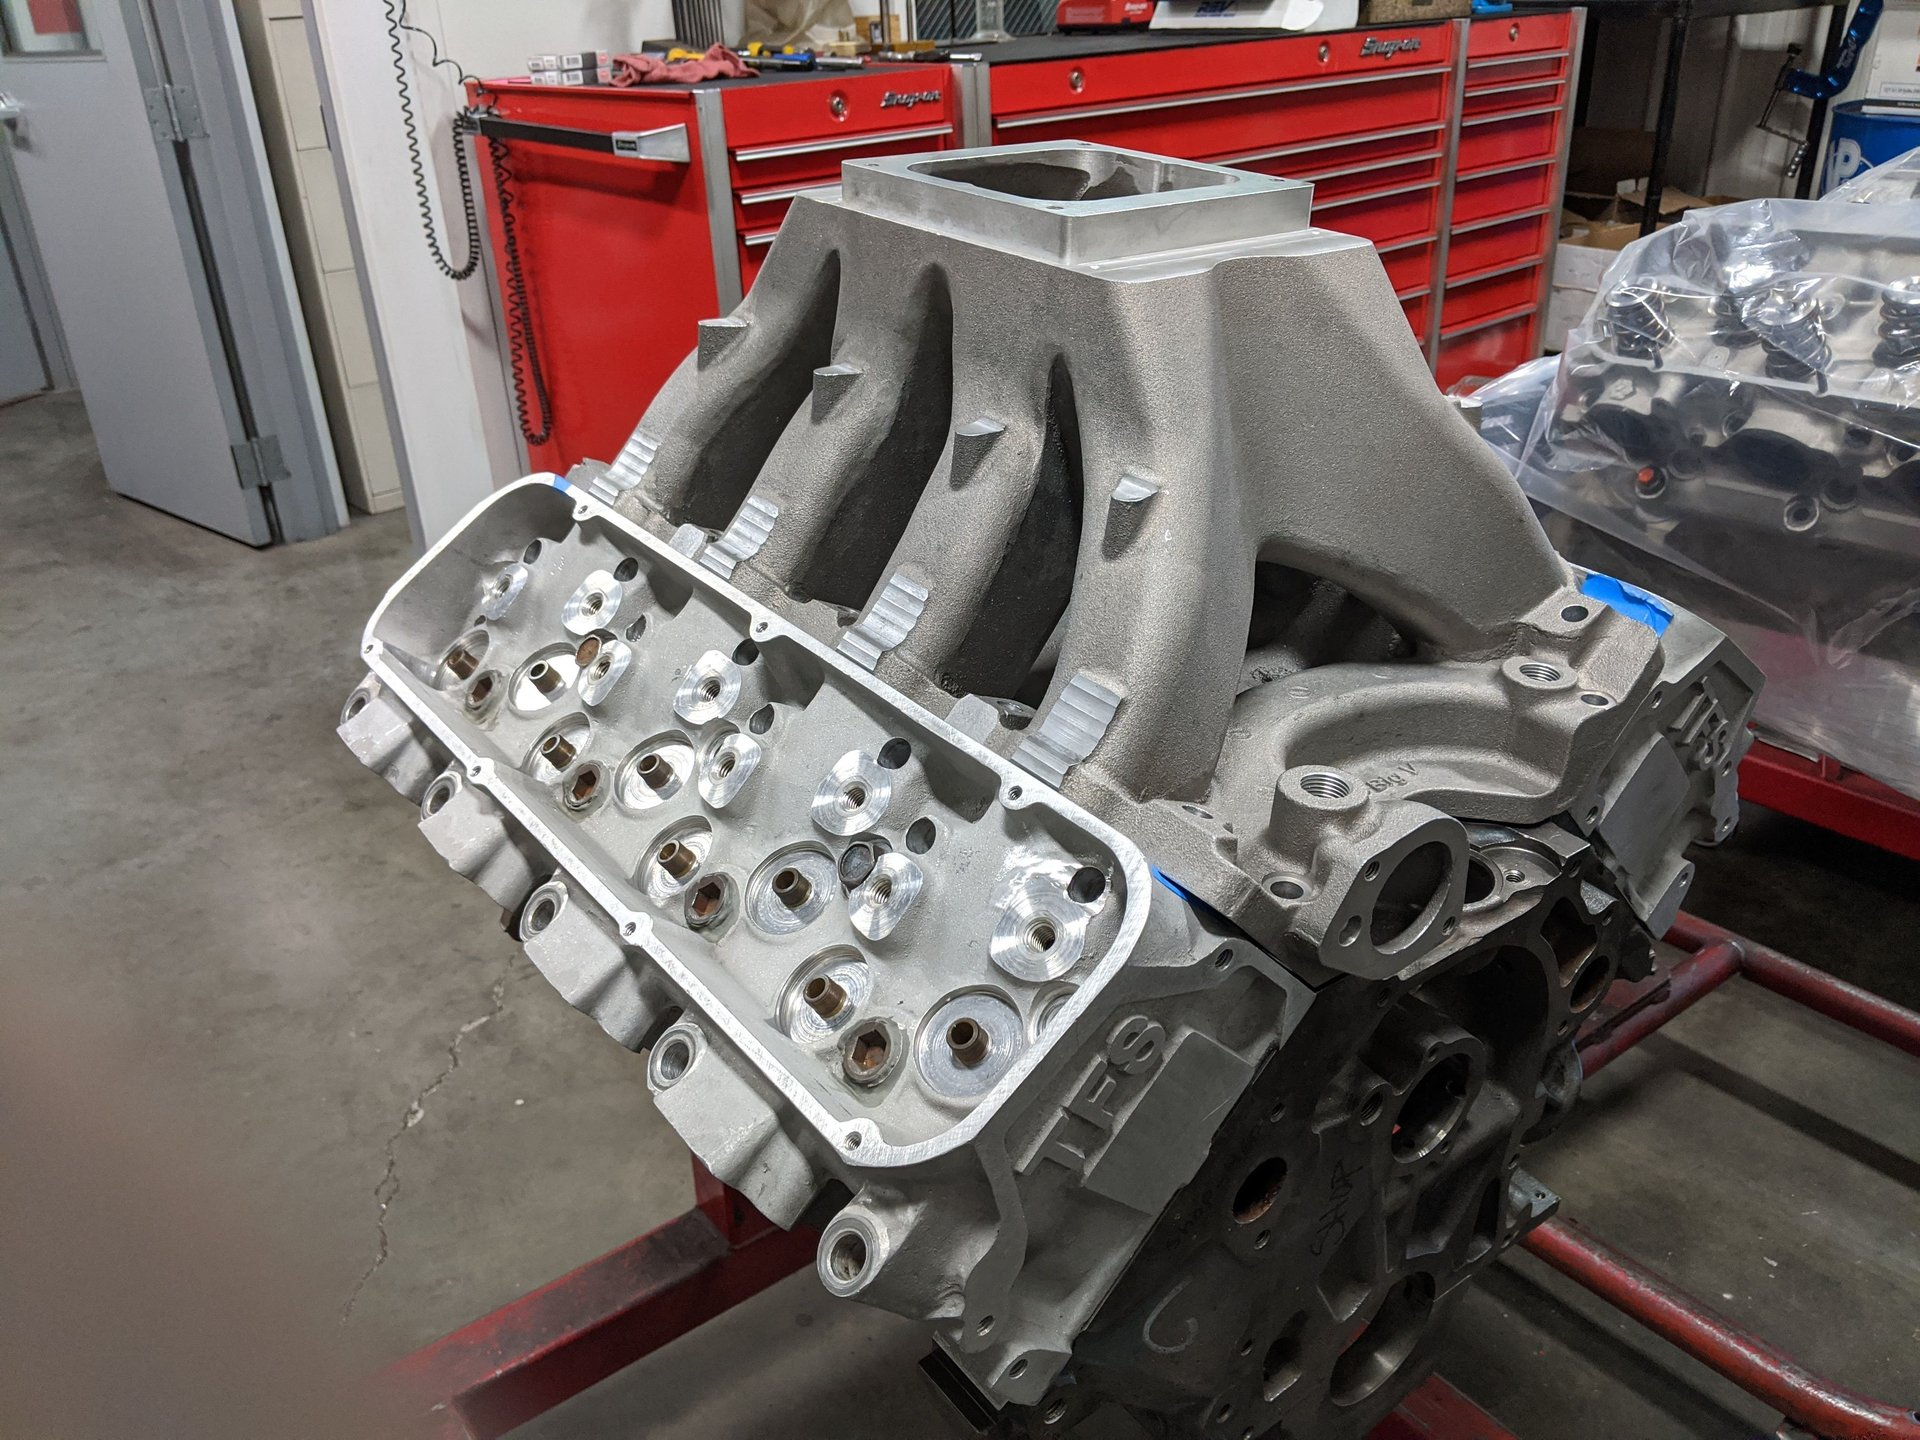 New valve train for OLD TFS A460's. Img_20210409_160954-jpg